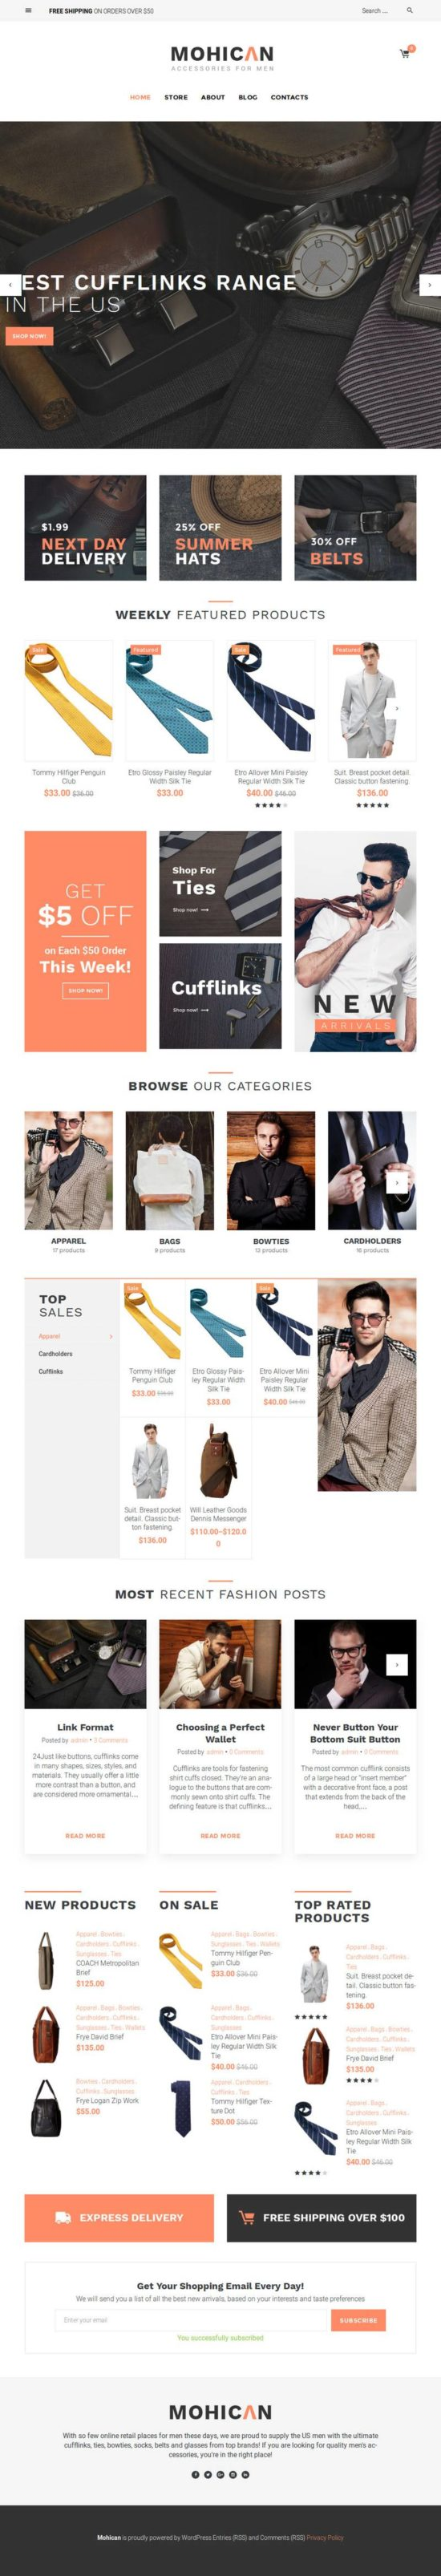 mohican templatemonster woocommerce theme 01 1 550x3212 - Mohican WordPress Theme